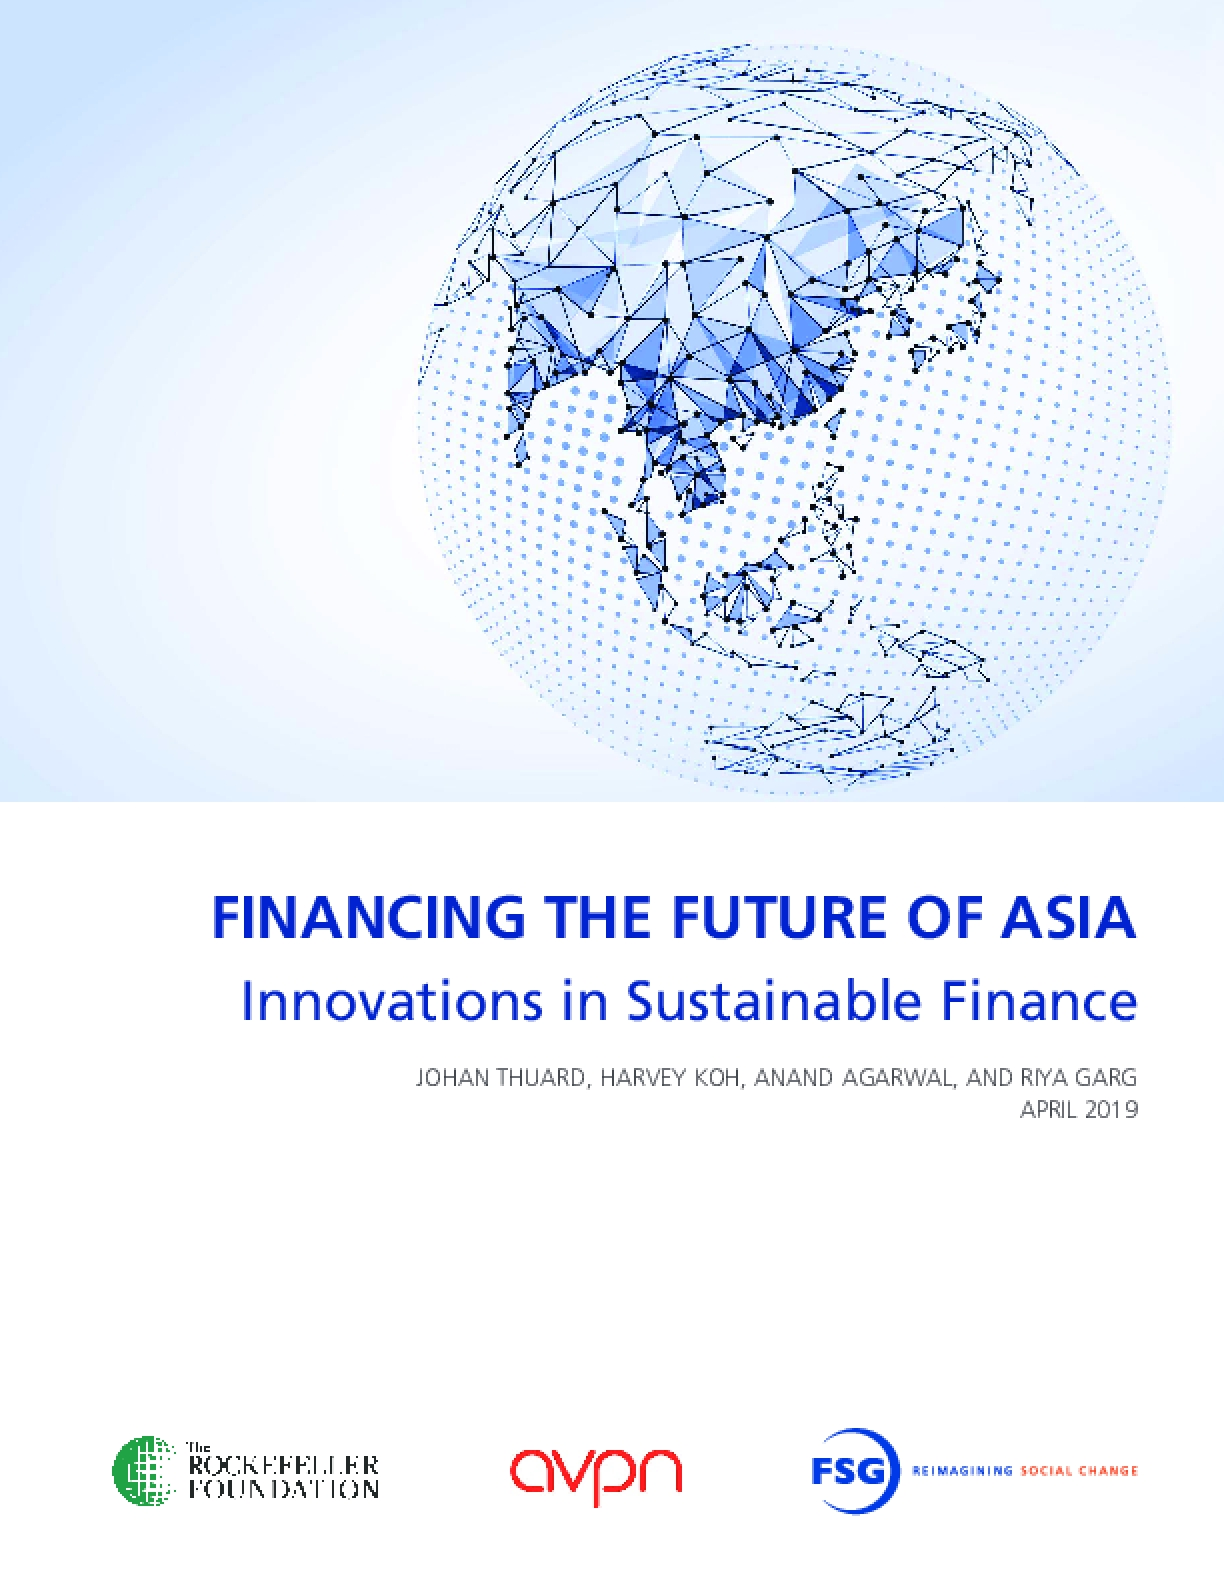 Financing the Future of Asia: Innovations in Sustainable Finance